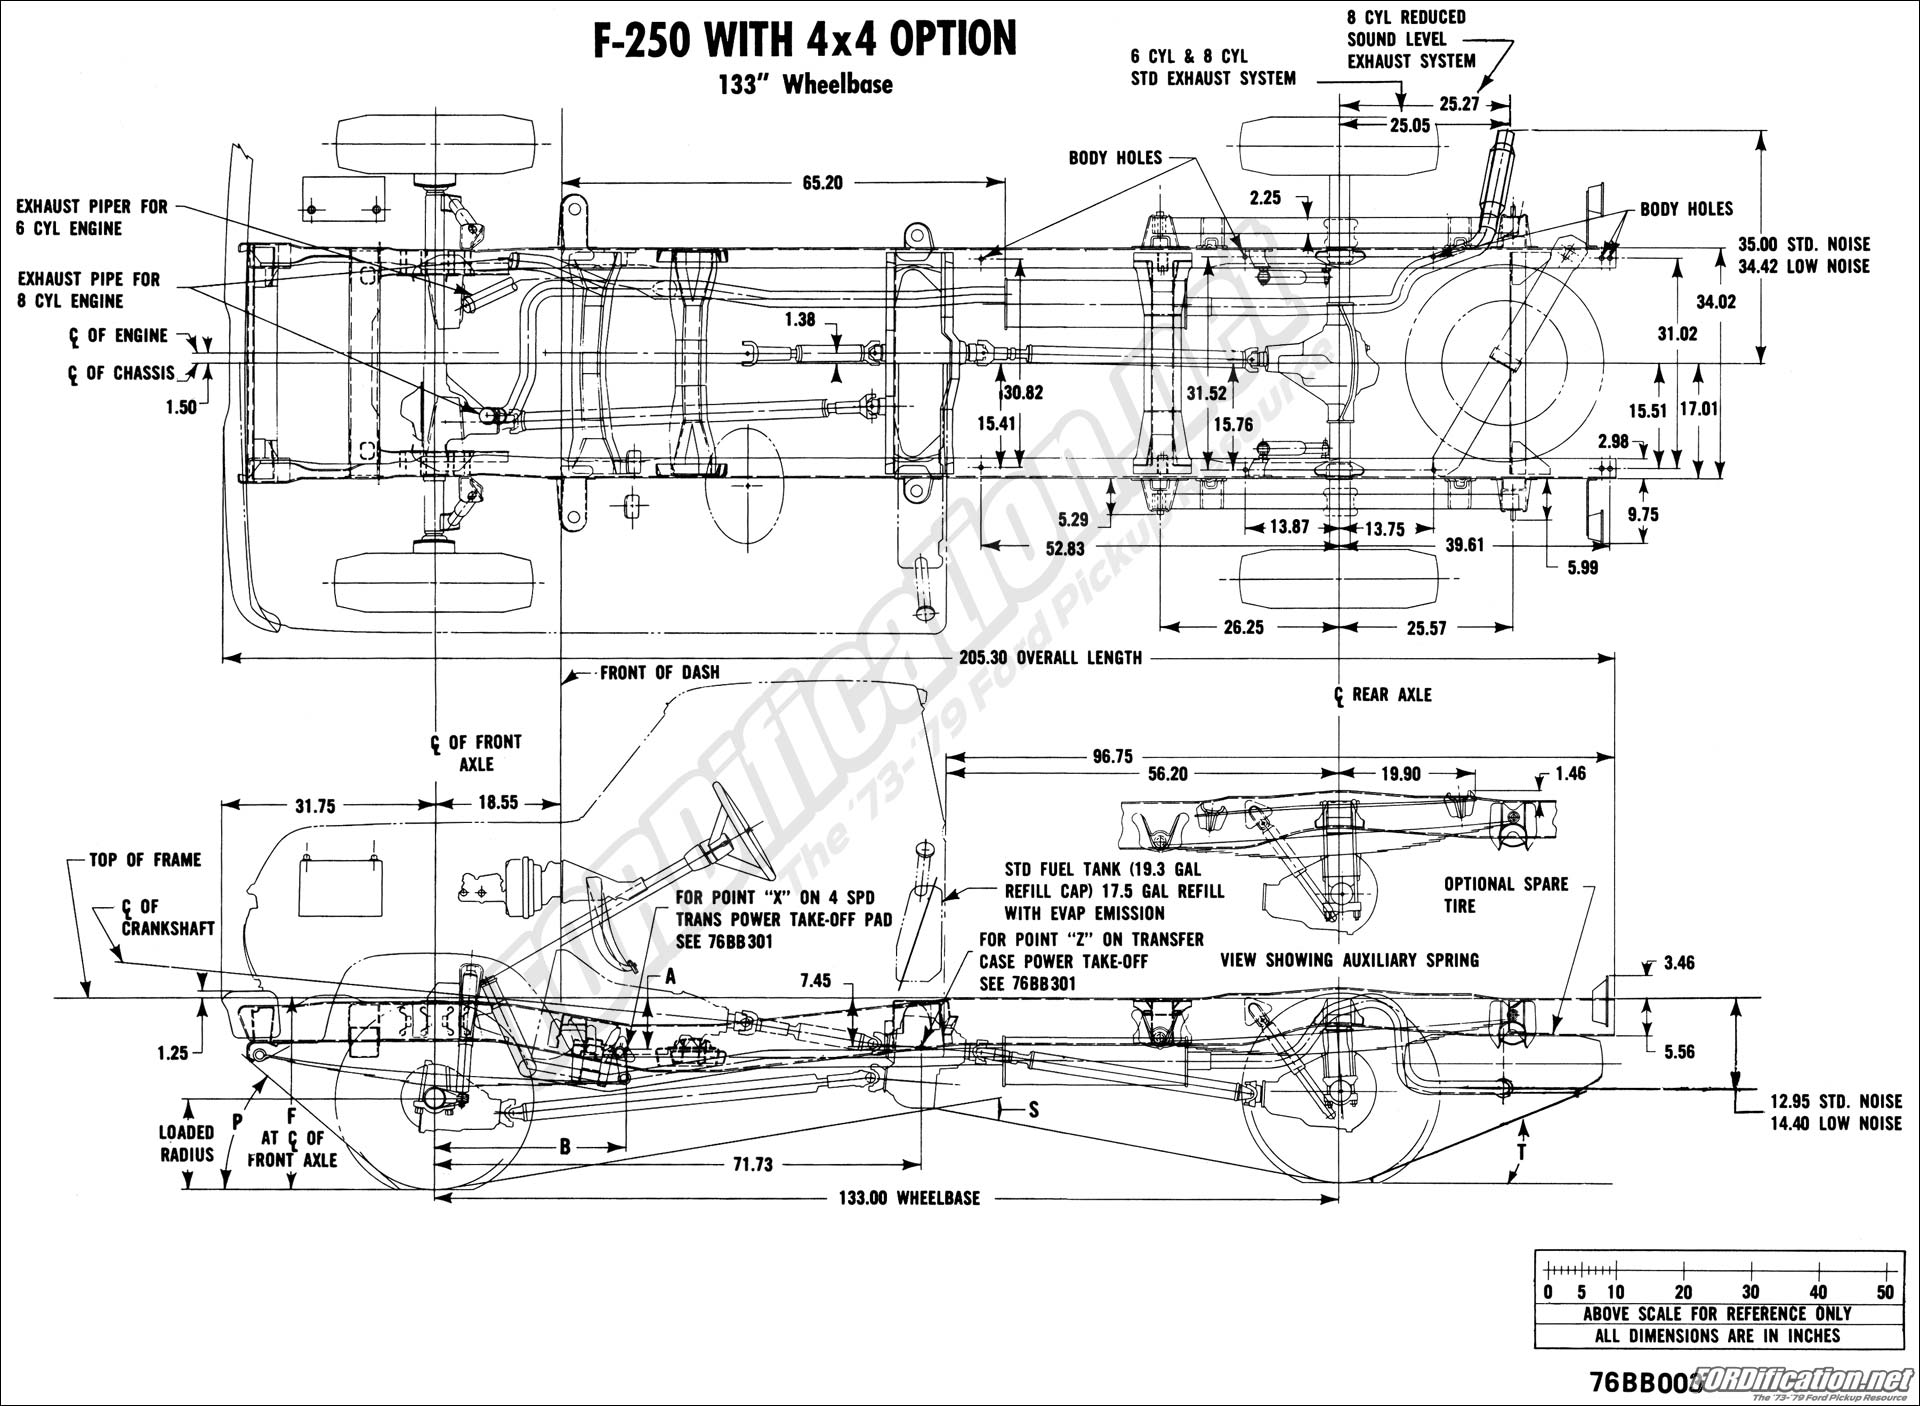 dodge challenger wiring diagram with Viewtopic on Gas Gas Gas furthermore Fuse Box Diagram 2001 Jeep Cherokee in addition 1989 GSXR1100 Wiring Diagram further 1965 Plymouth Ignition Wiring Diagram in addition 175jj Firing Order Spark Plug Wires.